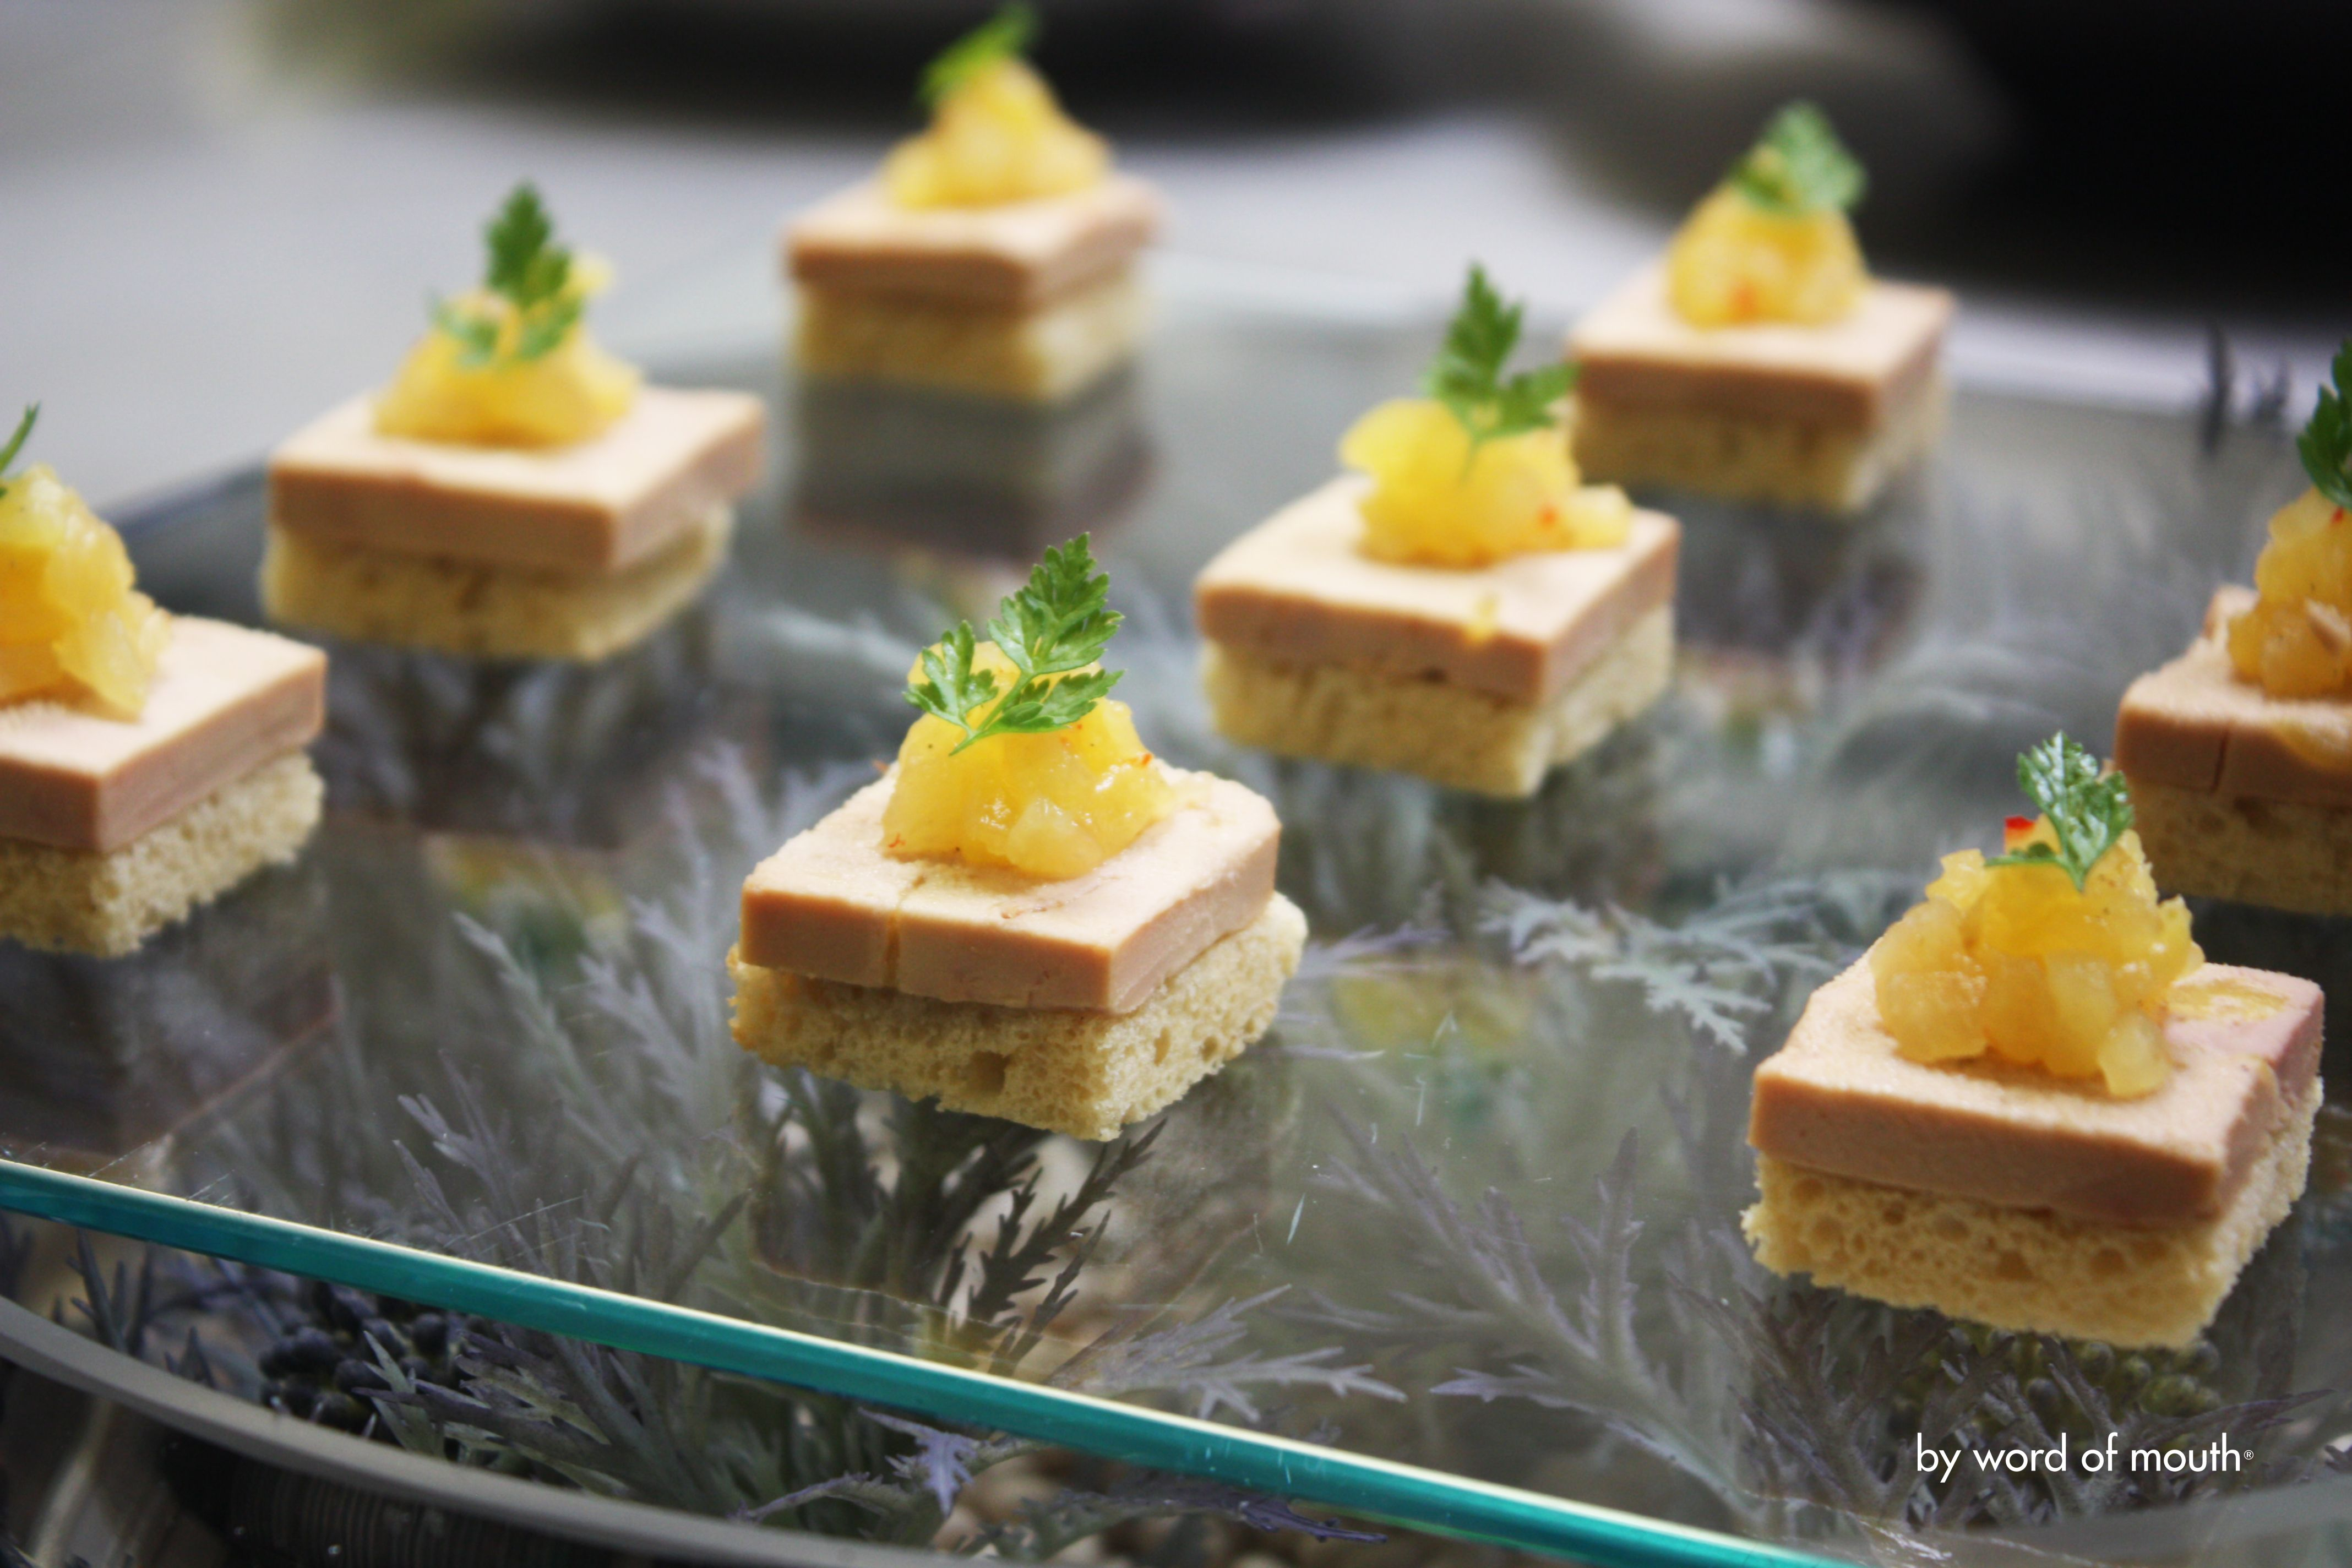 Canape Hh Cold Canape Pressed Foie Gras Terrine With Pineapple Vanilla